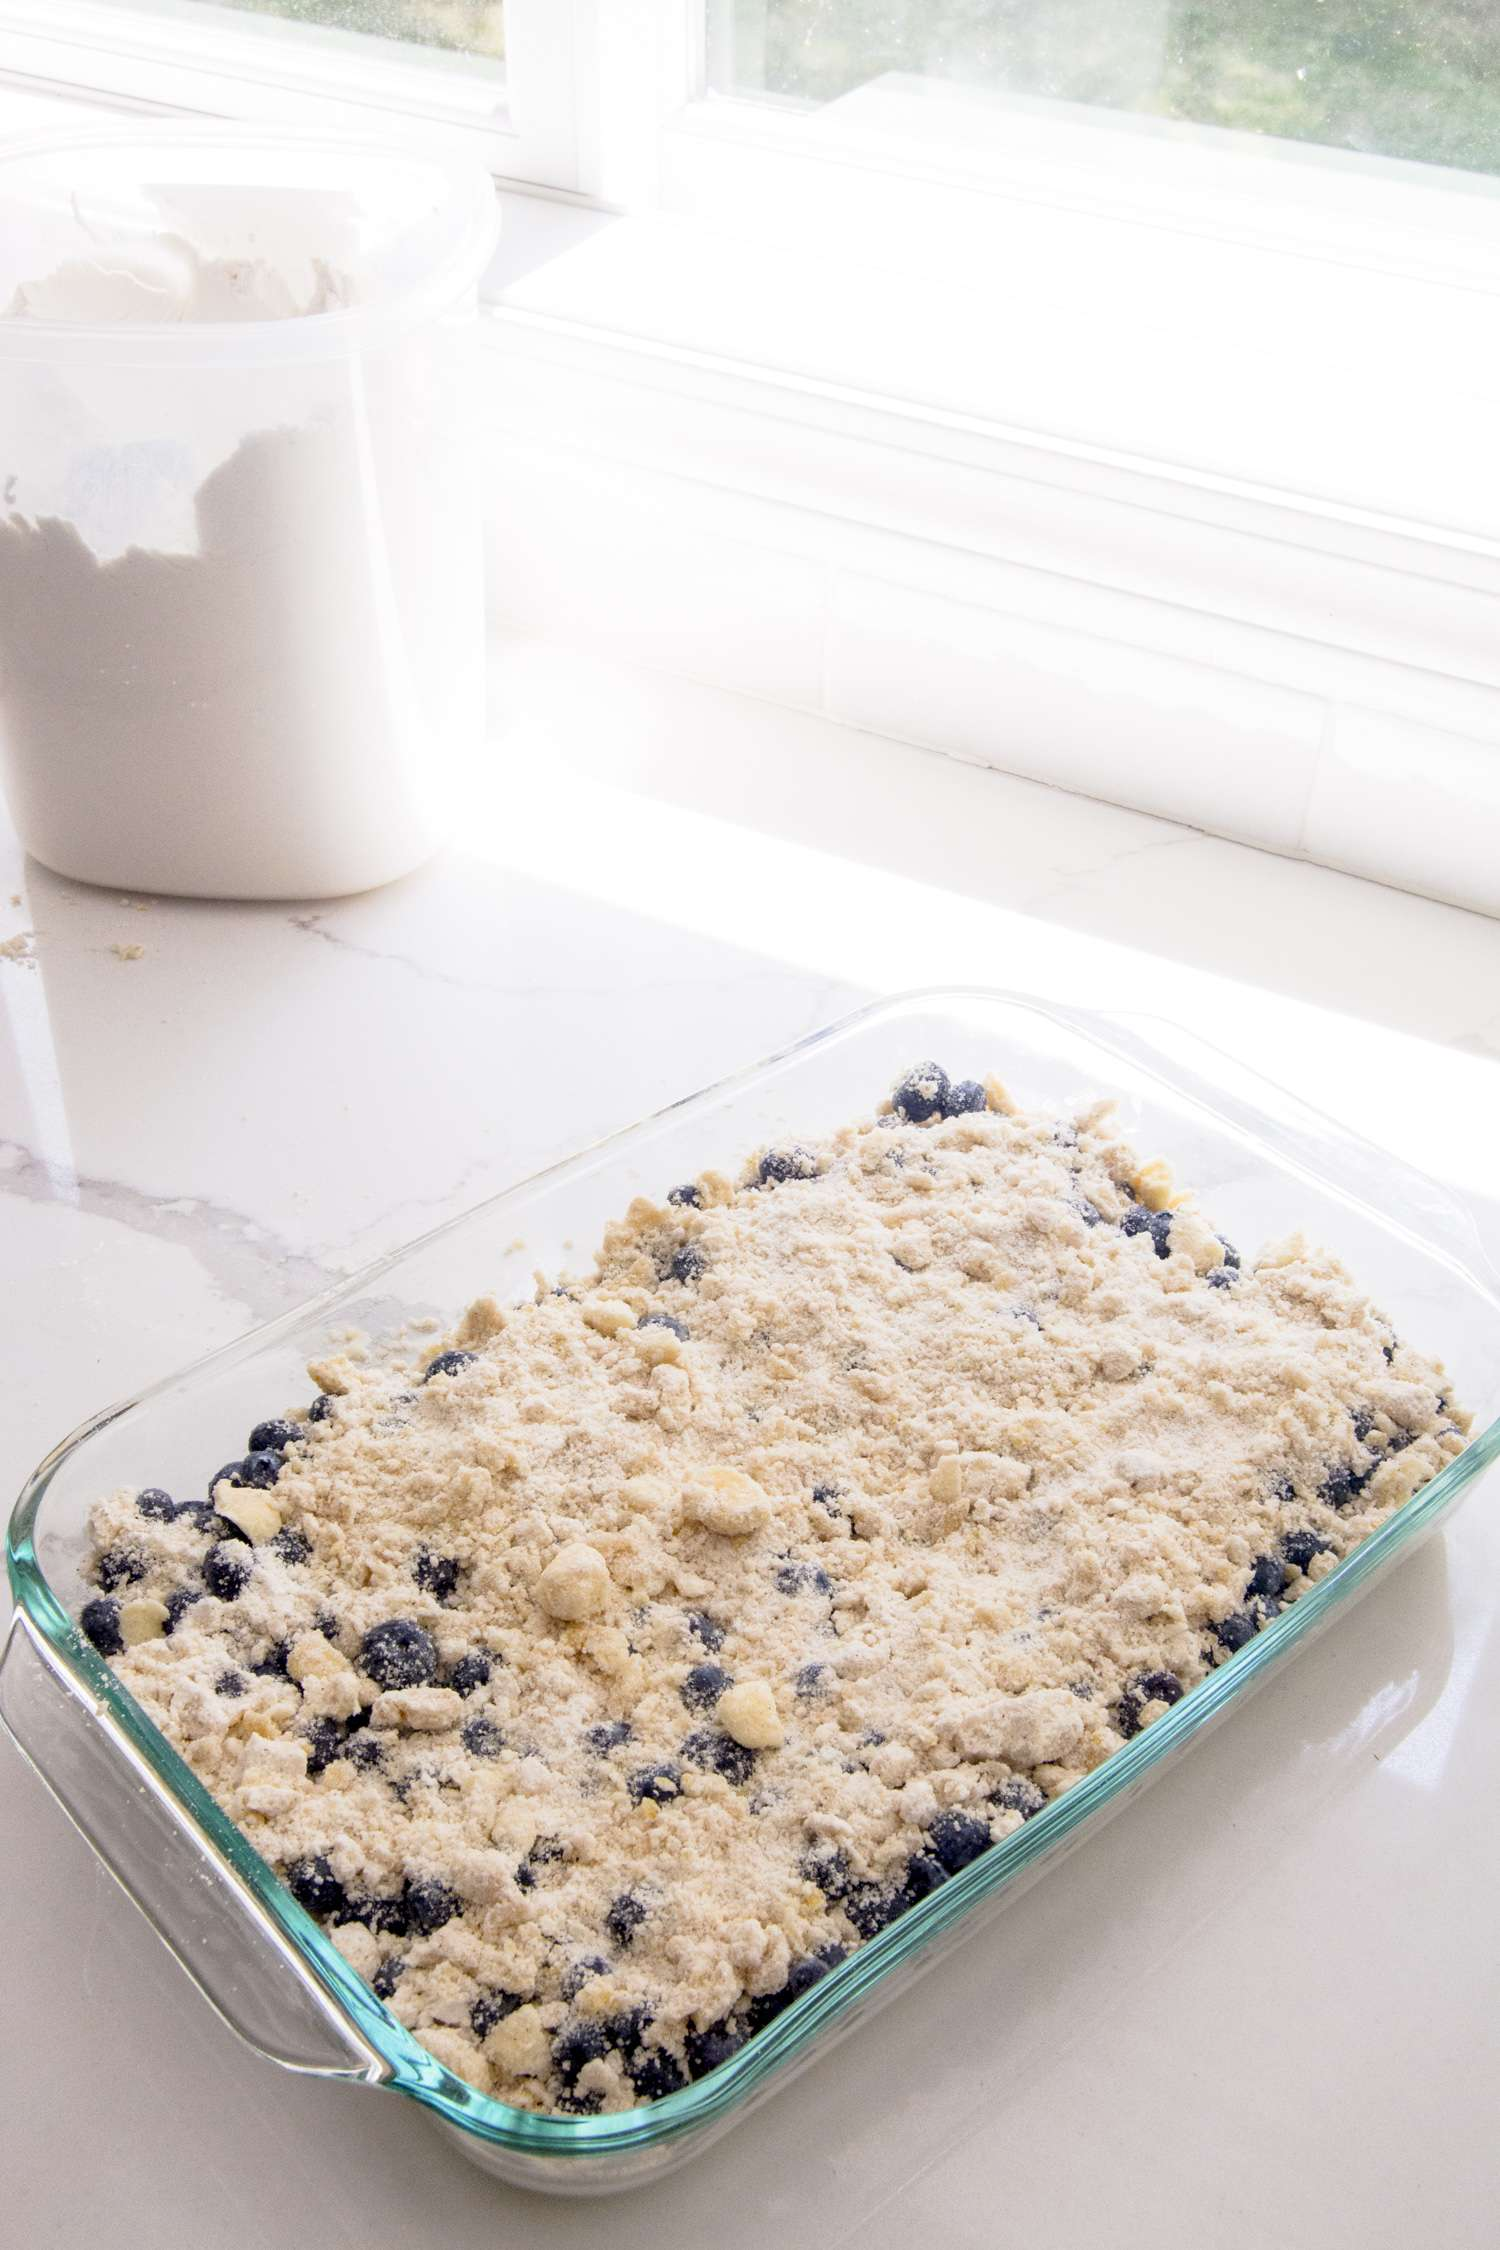 Blueberry Cobbler ready to bake